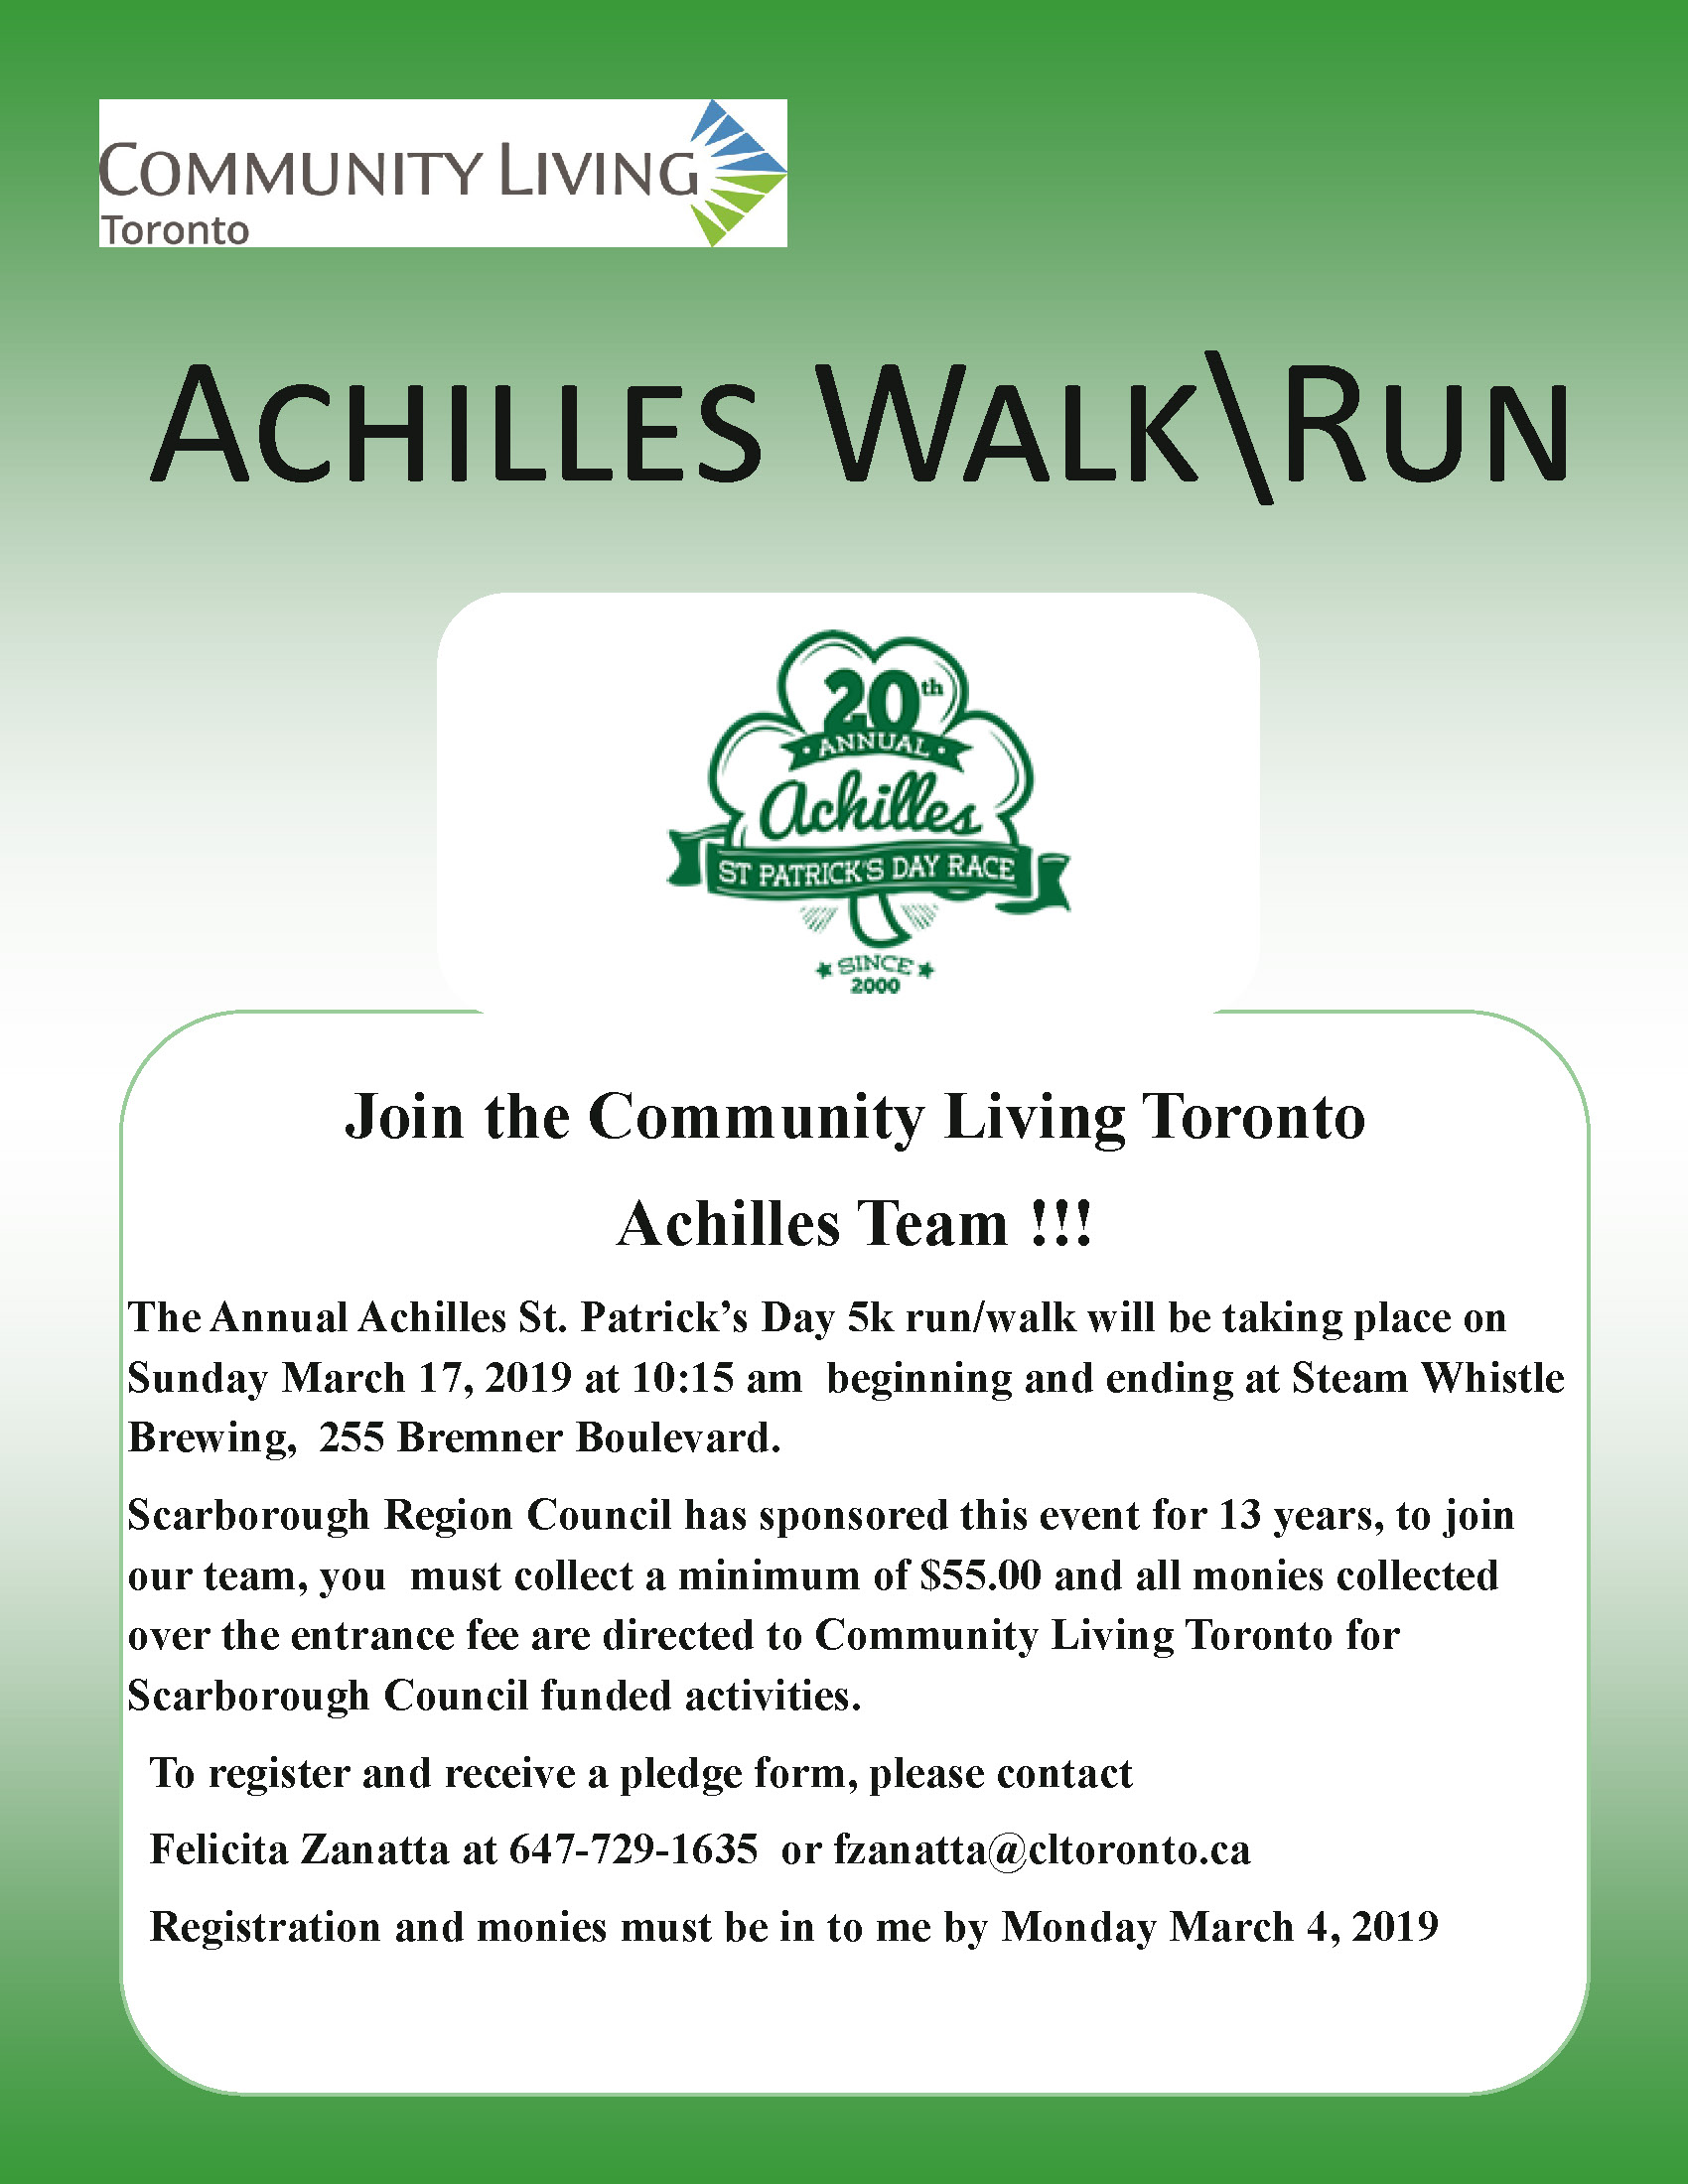 The Annual Achilles St. Patrick's Day 5k run/walk will be taking place on Sunday March 17, 2019 at 10:15 am beginning and ending at Steam Whistle Brewing, 255 Bremner Boulevard. Scarborough Region Council has sponsored this event for 13 years, to join our team, you must collect a minimum of $55.00 and all monies collected over the entrance fee are directed to Community Living Toronto for Scarborough Council funded activities. To register and receive a pledge form, please contact Felicita Zanatta at 647-729-1635 or fzanatta@cltoronto.ca Registration and monies must be in to me by Monday March 4, 2019